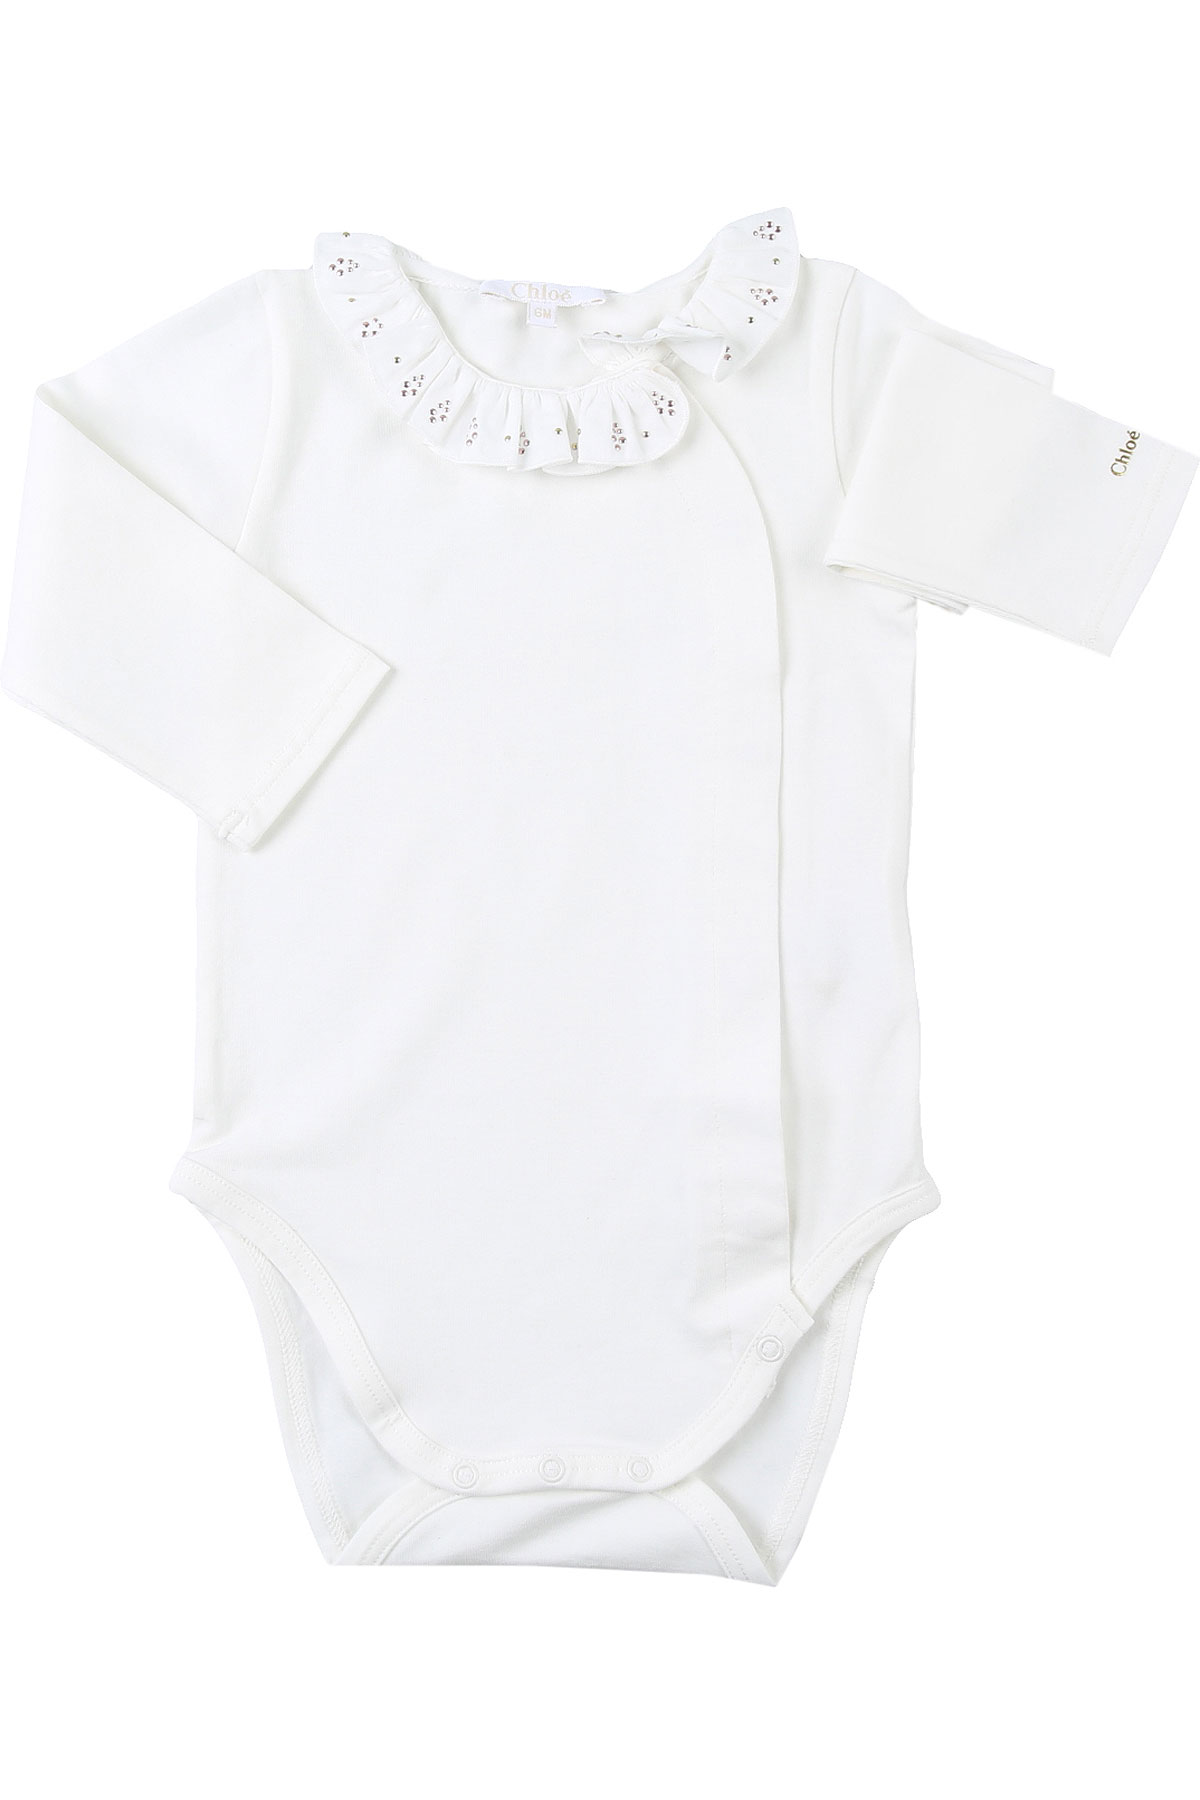 Chloe Baby Bodysuits & Onesies for Girls On Sale, White, Cotton, 2019, 12M 6M 9M